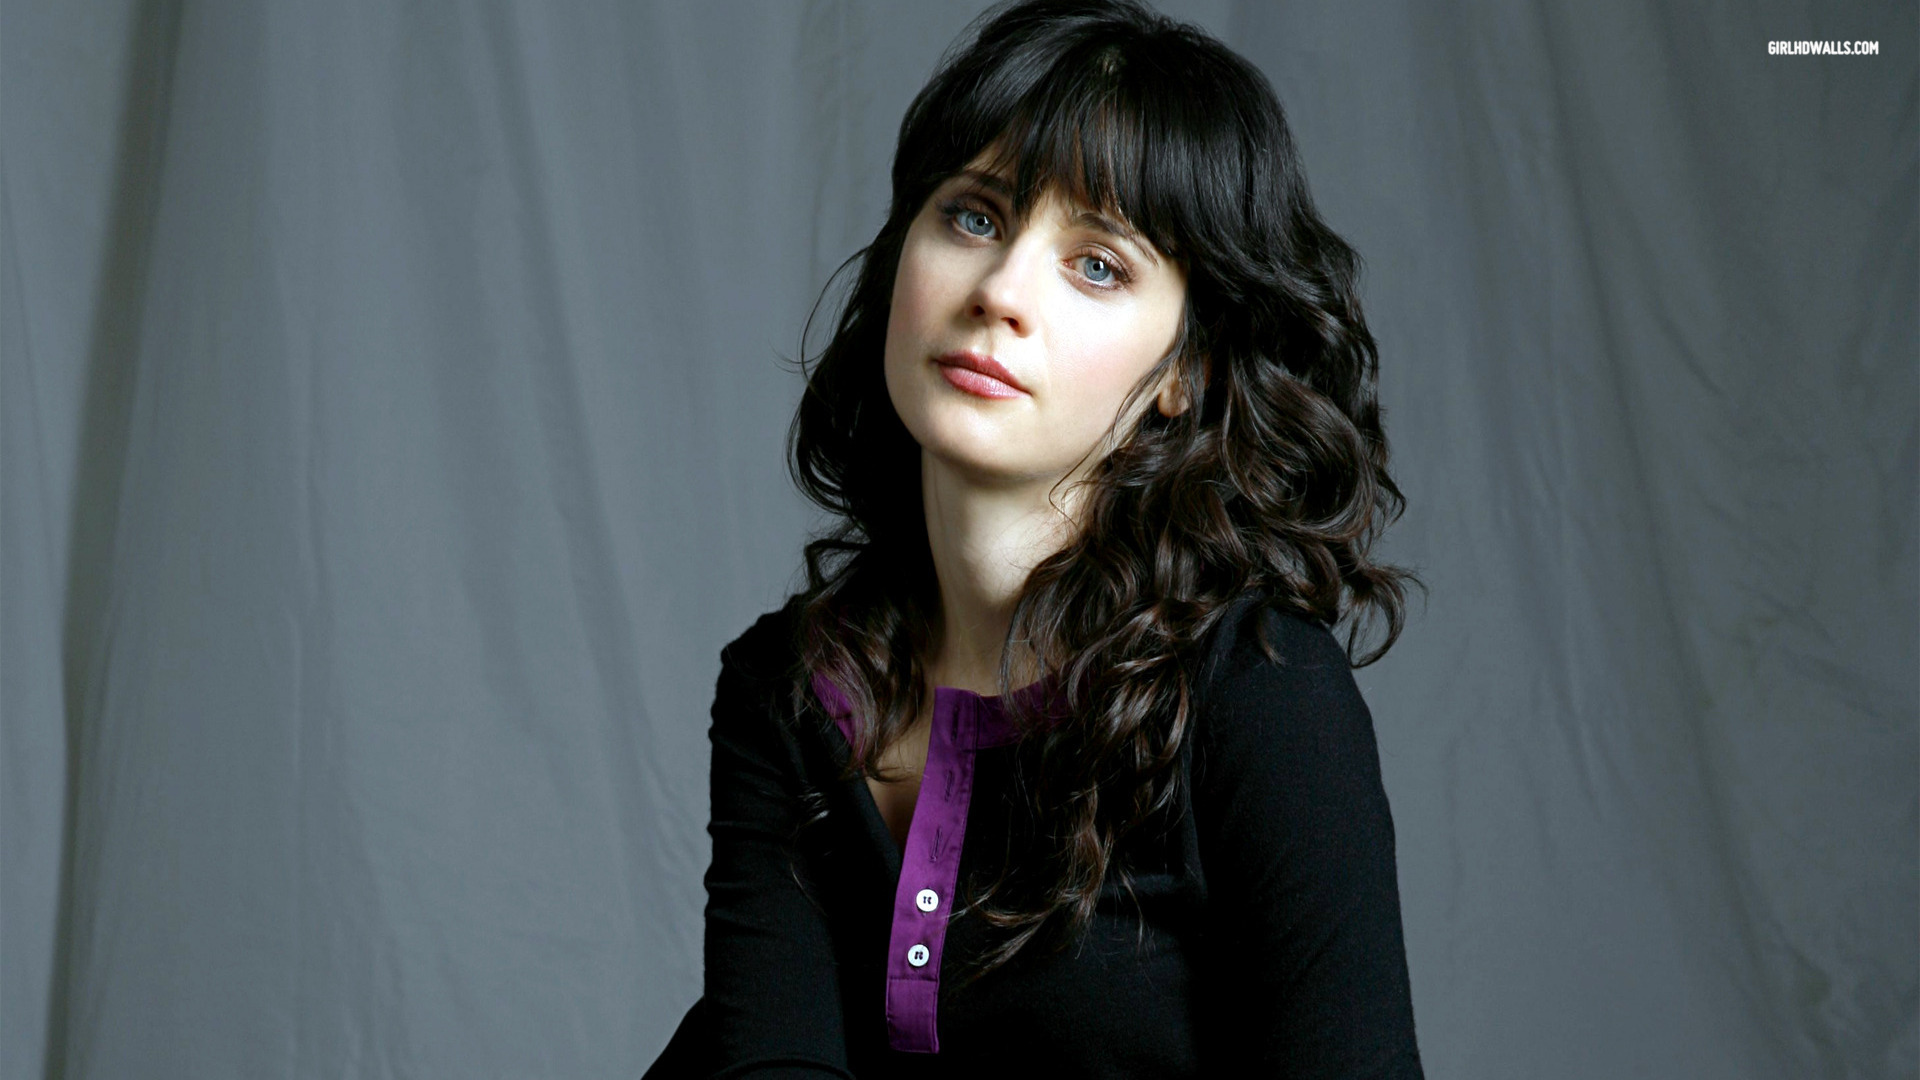 zooey deschanel wallpapers high quality download free